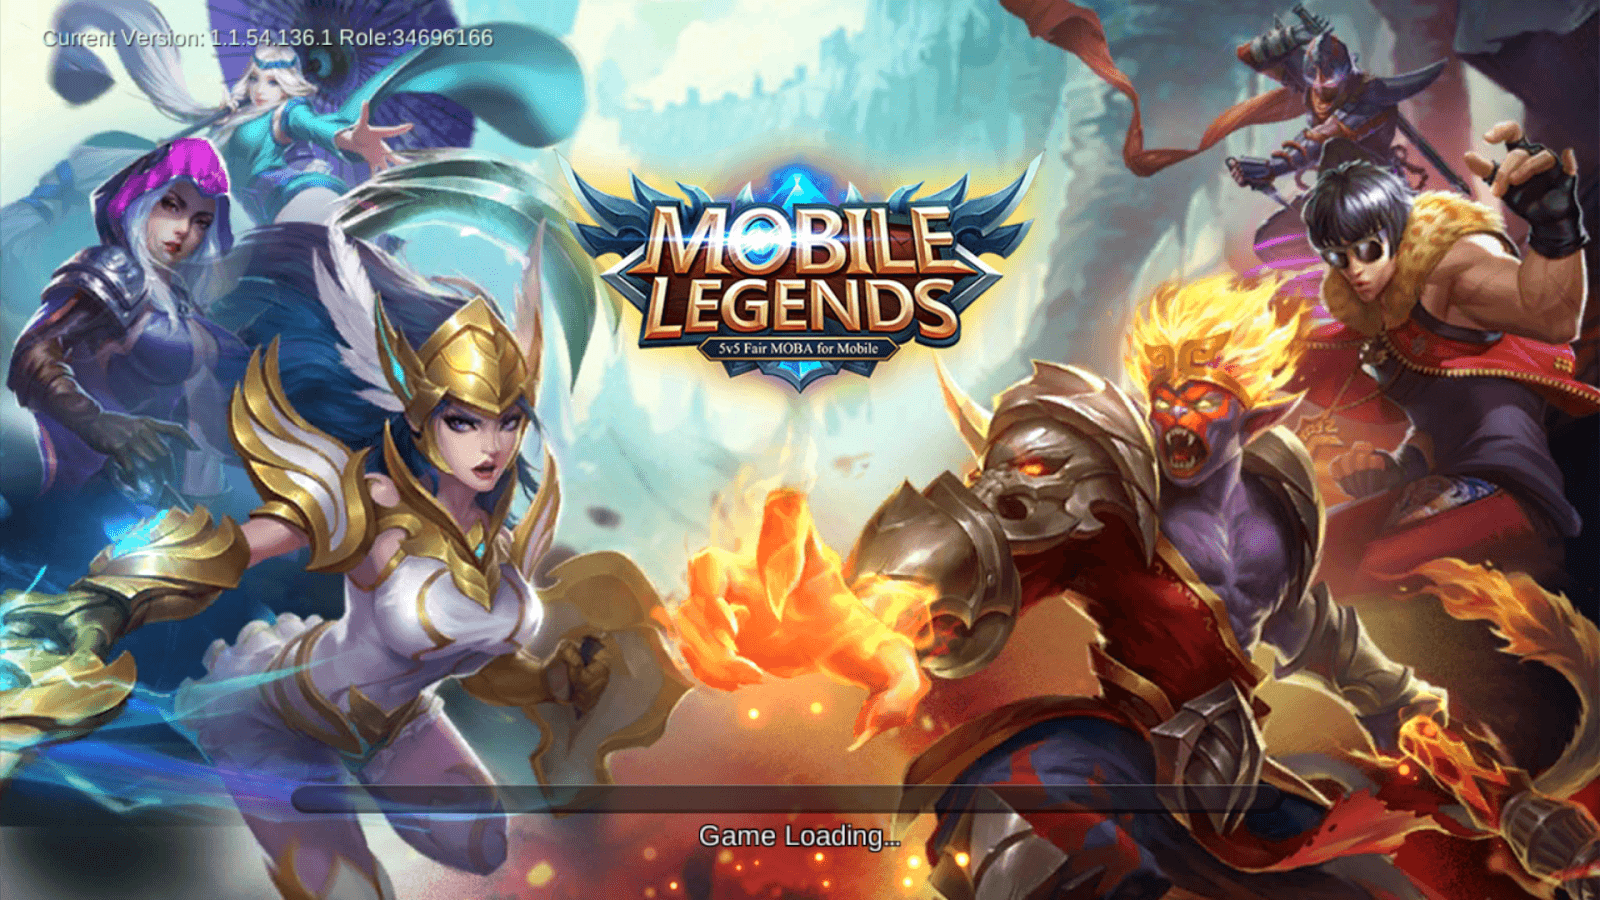 Mobile Legends HD Wallpapers